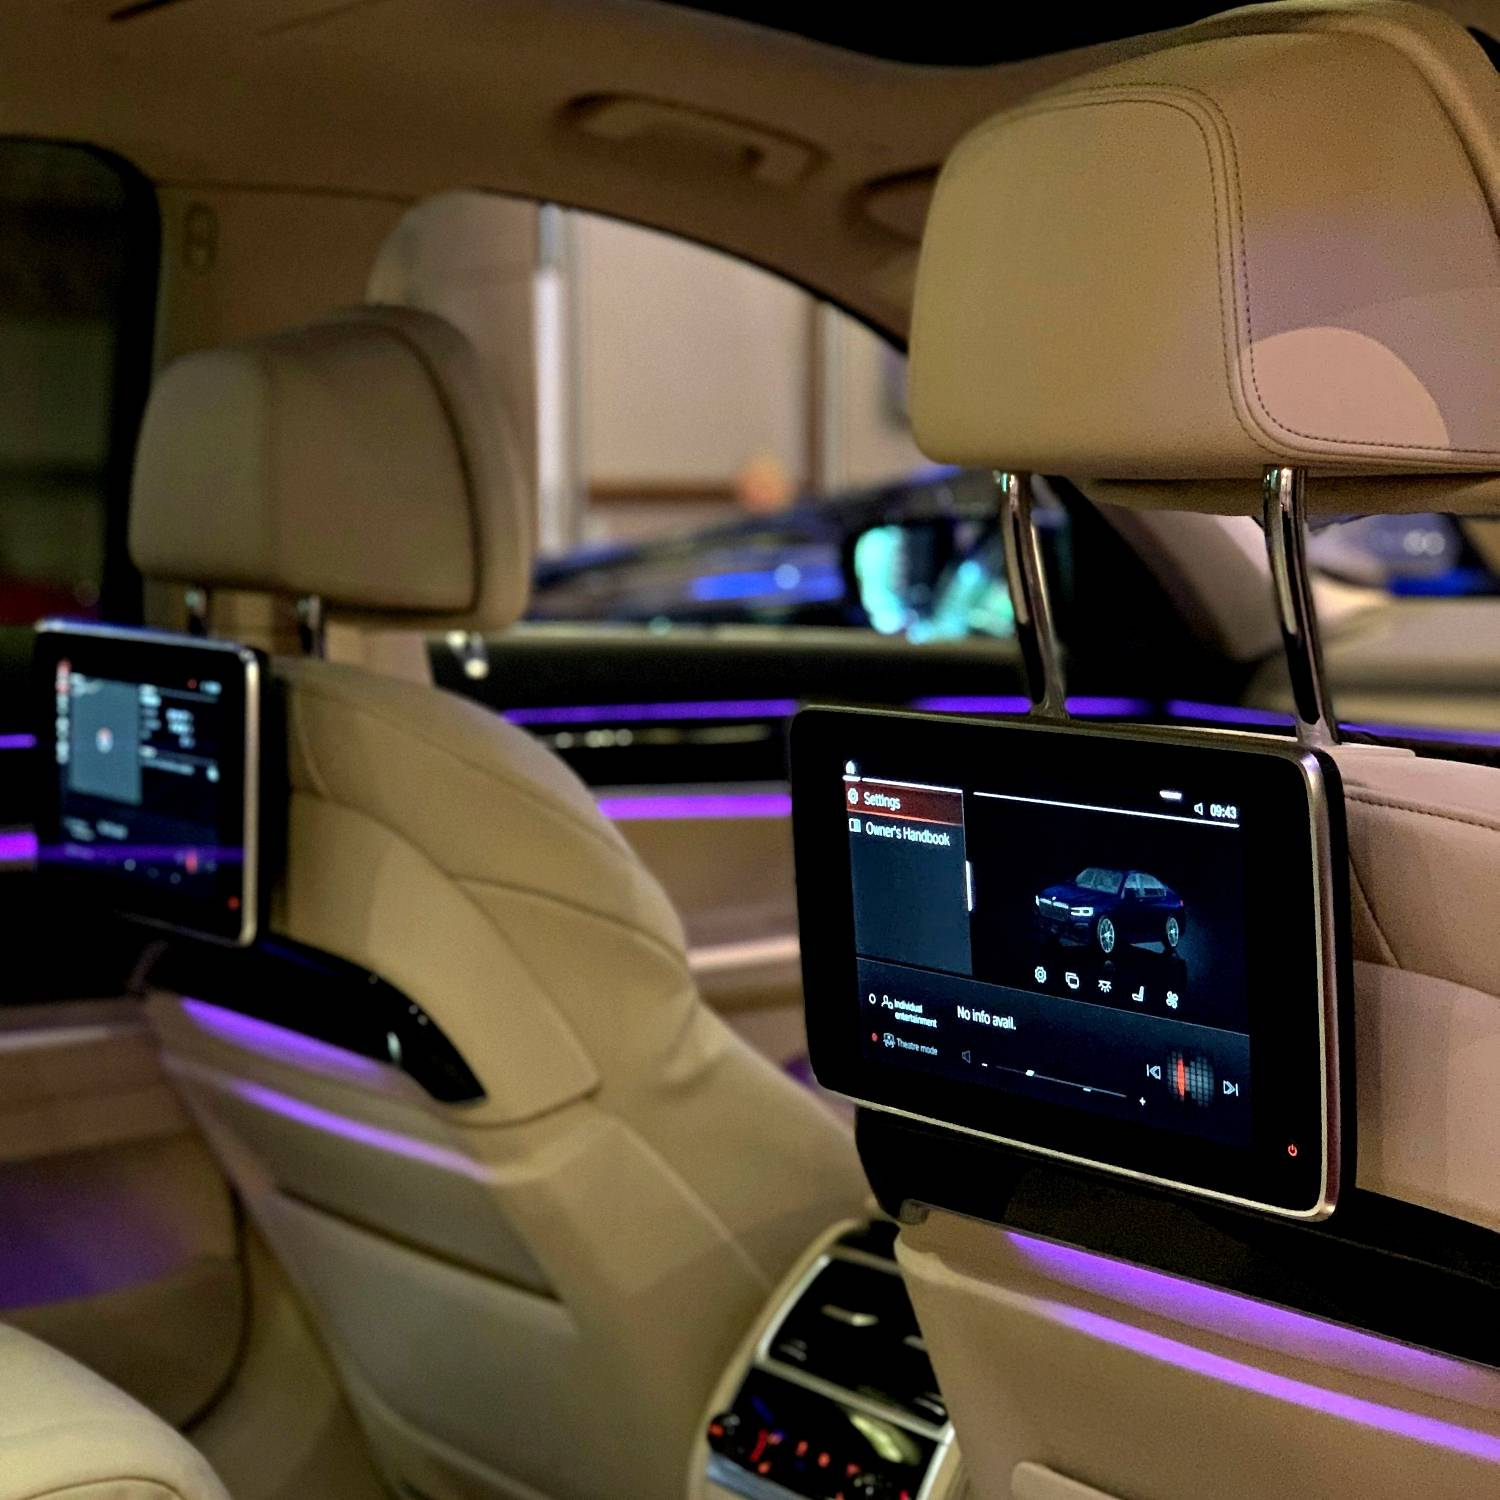 Bmwercial: Launching The Next Generation In BMW Luxury